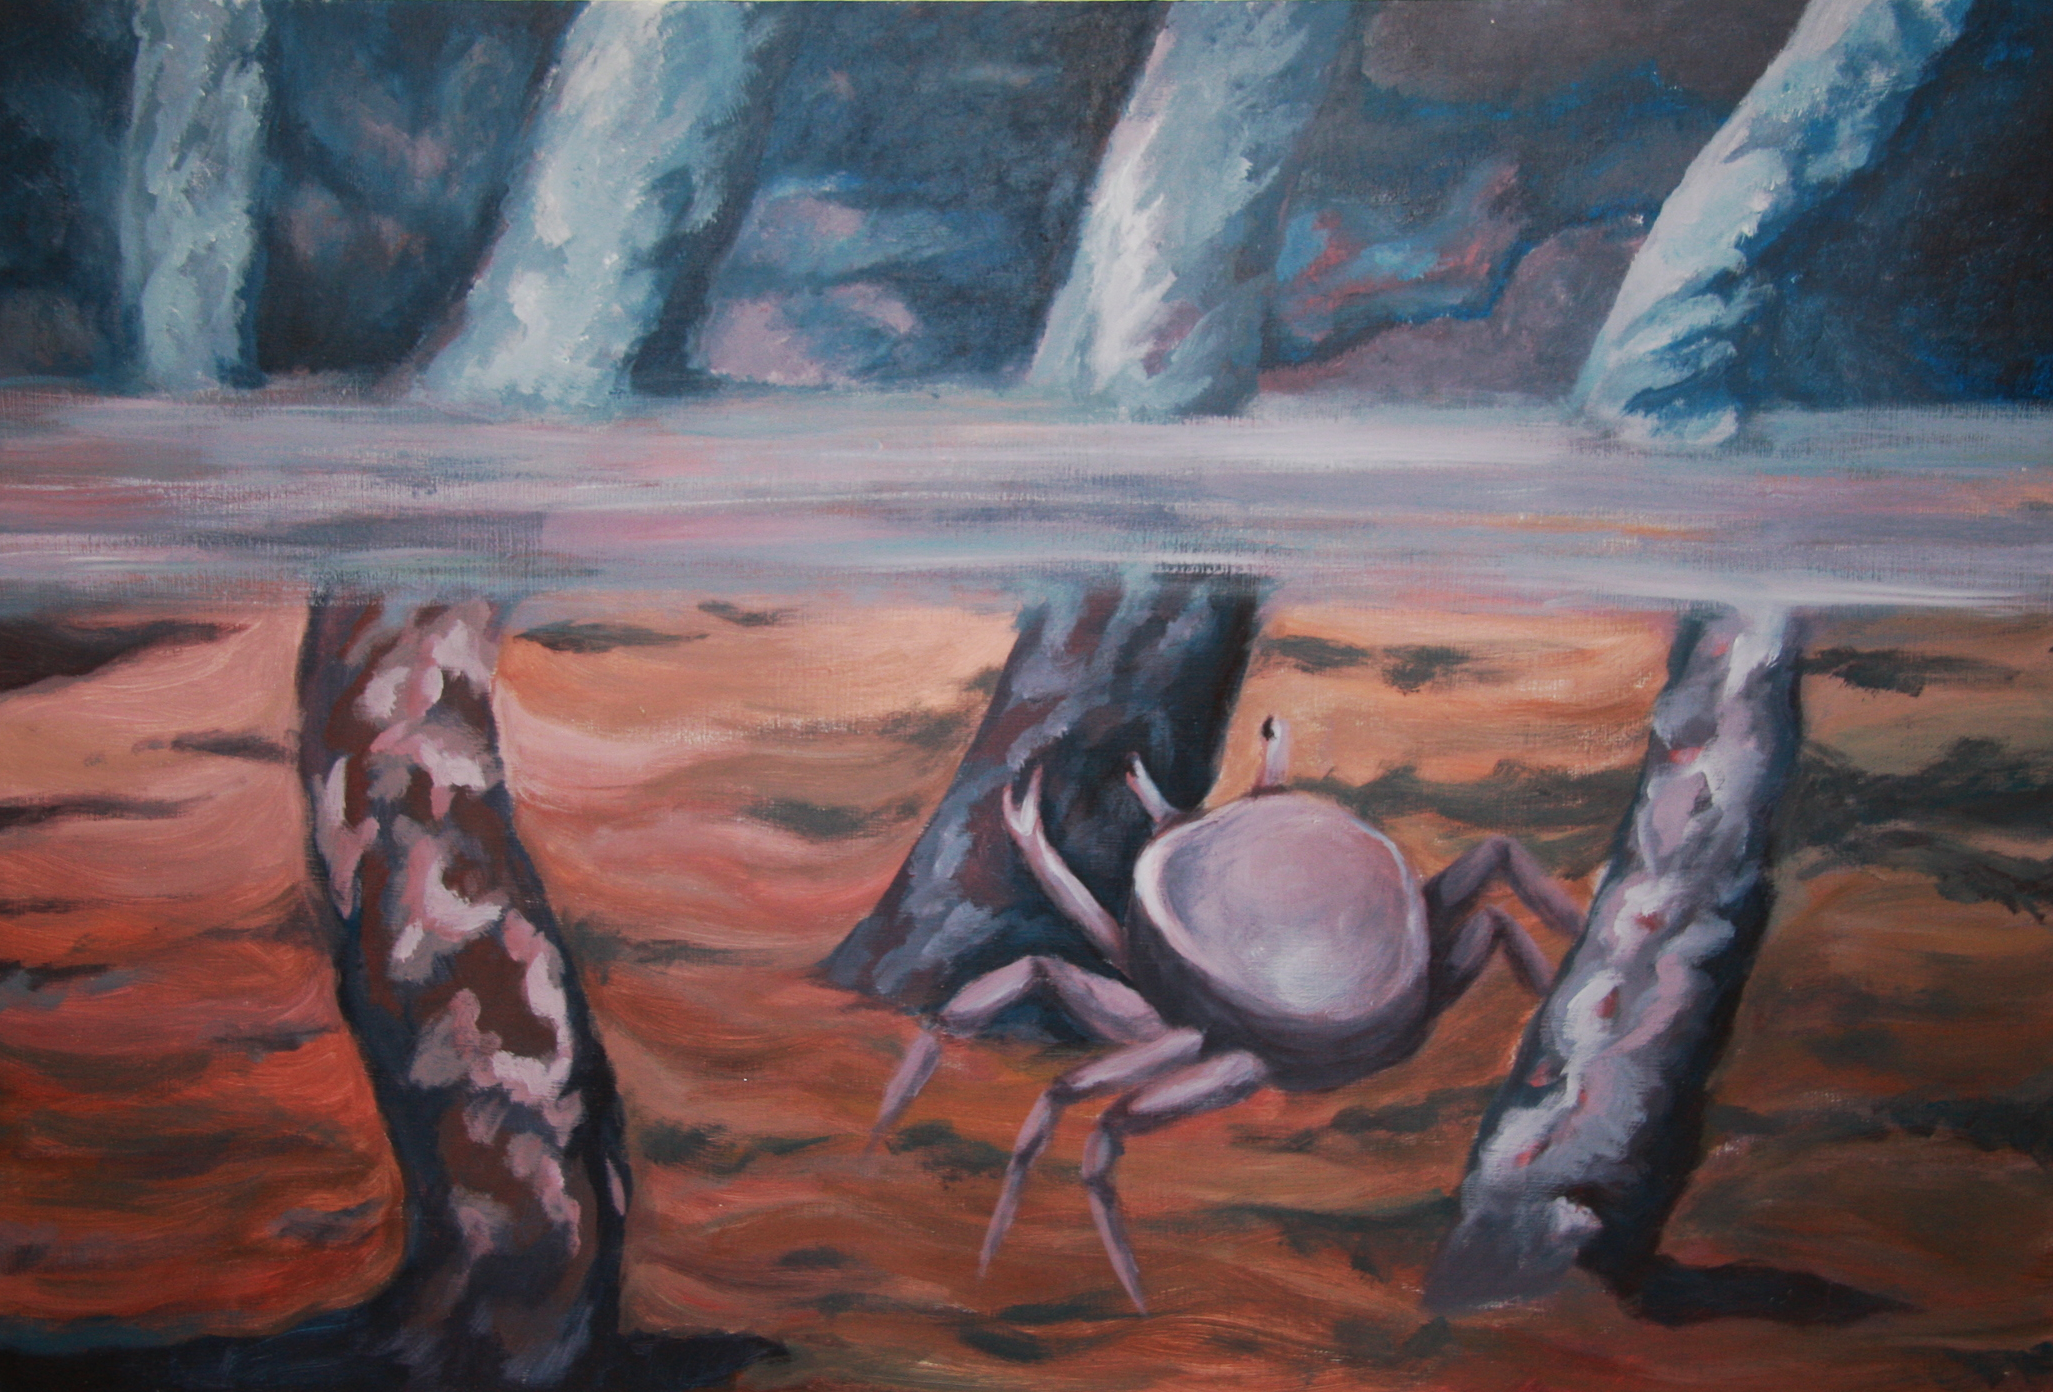 The edge of water and air. Oil painting, 1 x 0,7 meters.